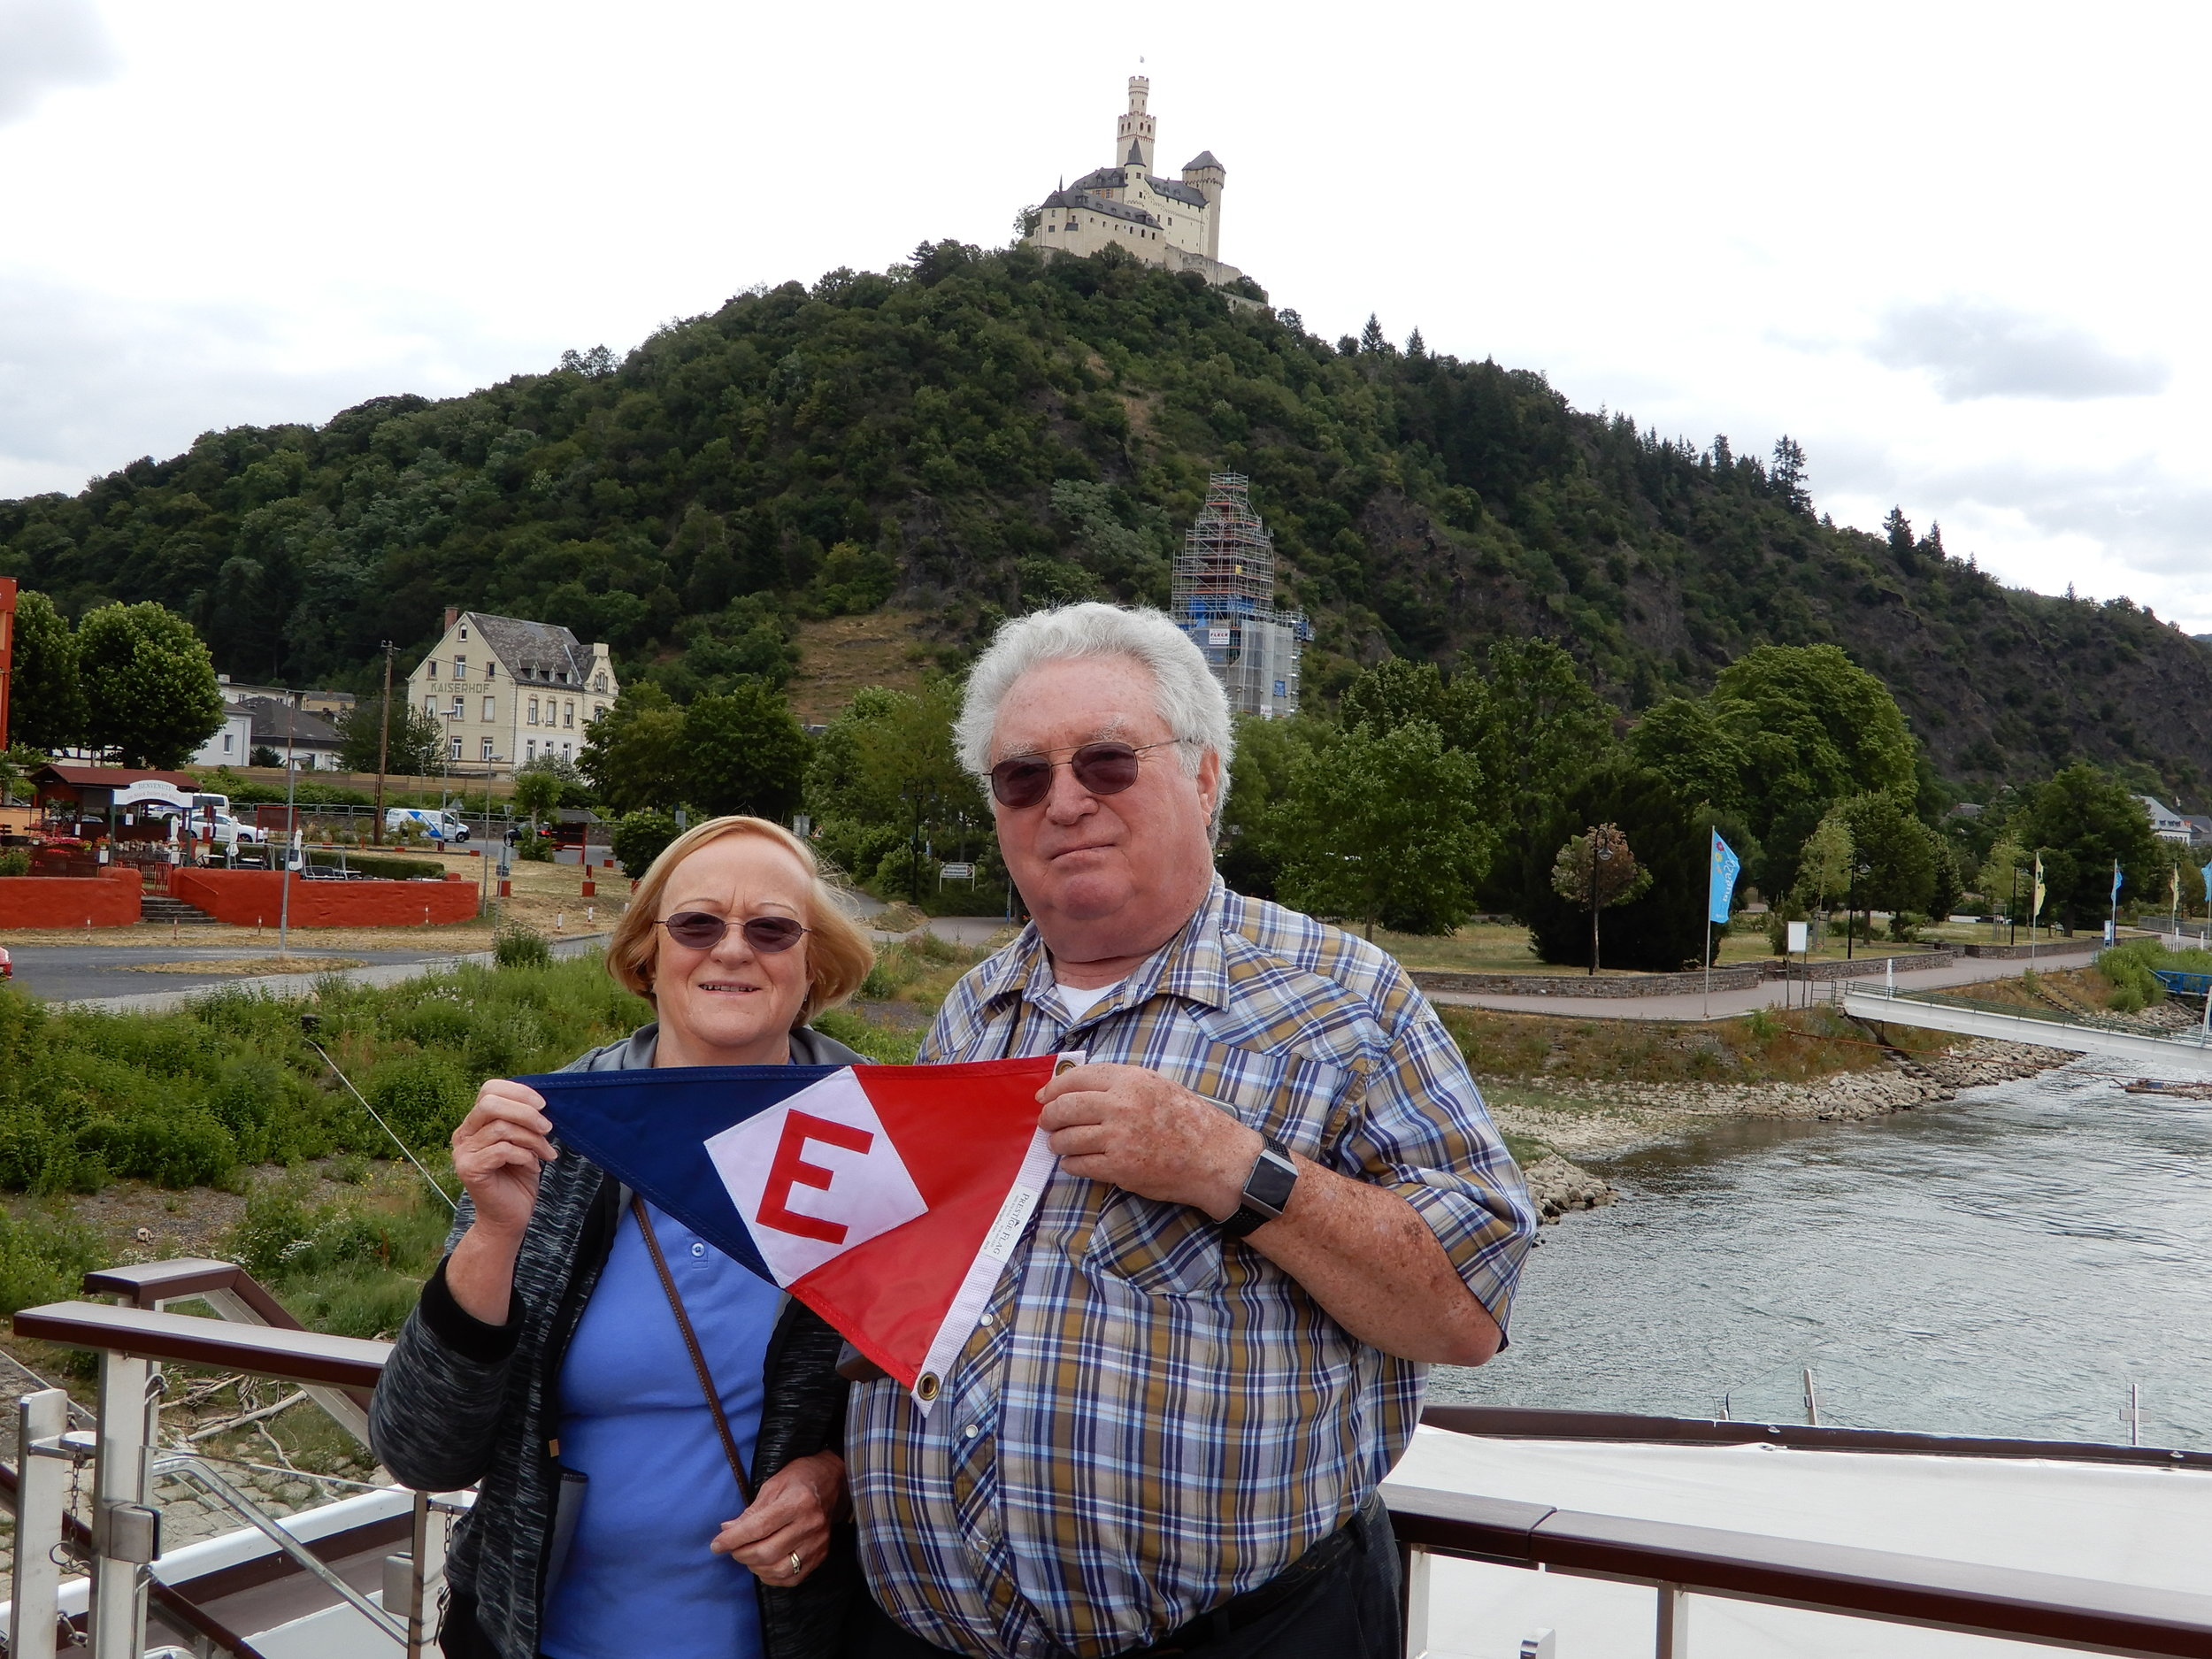 Joan and Keith show their EYC pride in the shadow of the Marksburg Castle on the Rhine River in Germany